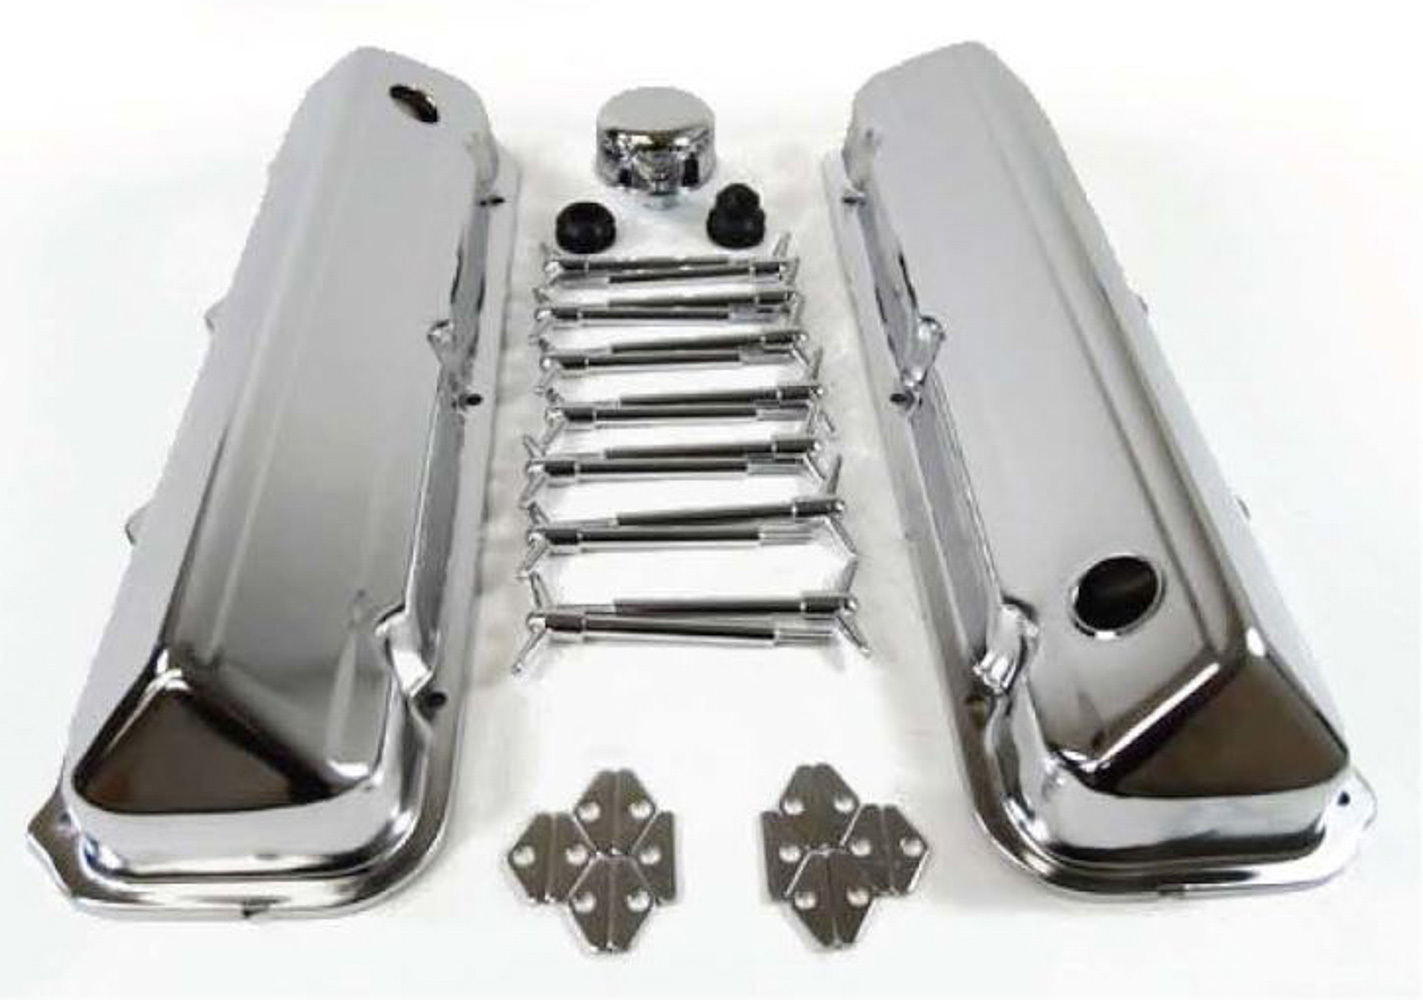 Racing Power Company R3041 Engine Dress Up Kit, Breathers / Grommets / Tabs / Valve Covers / Wing Nuts, Steel, Chrome, Big Block Ford, Kit